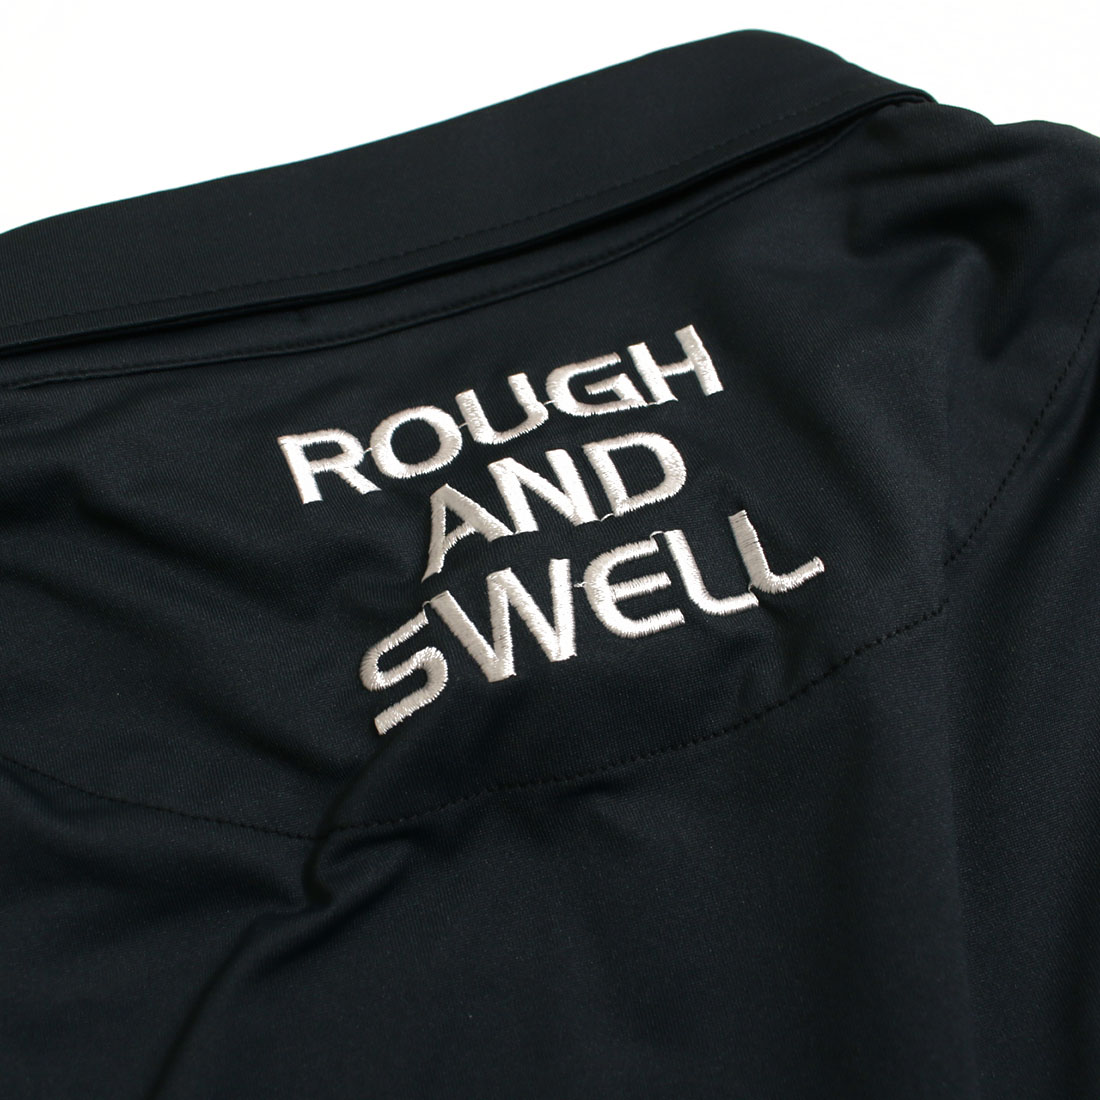 rough&swell ラフ&スウェル 【送料無料】○新作○2019 TOUR POLO(M L XL)ツアーポロ ポロシャツ メール便不可